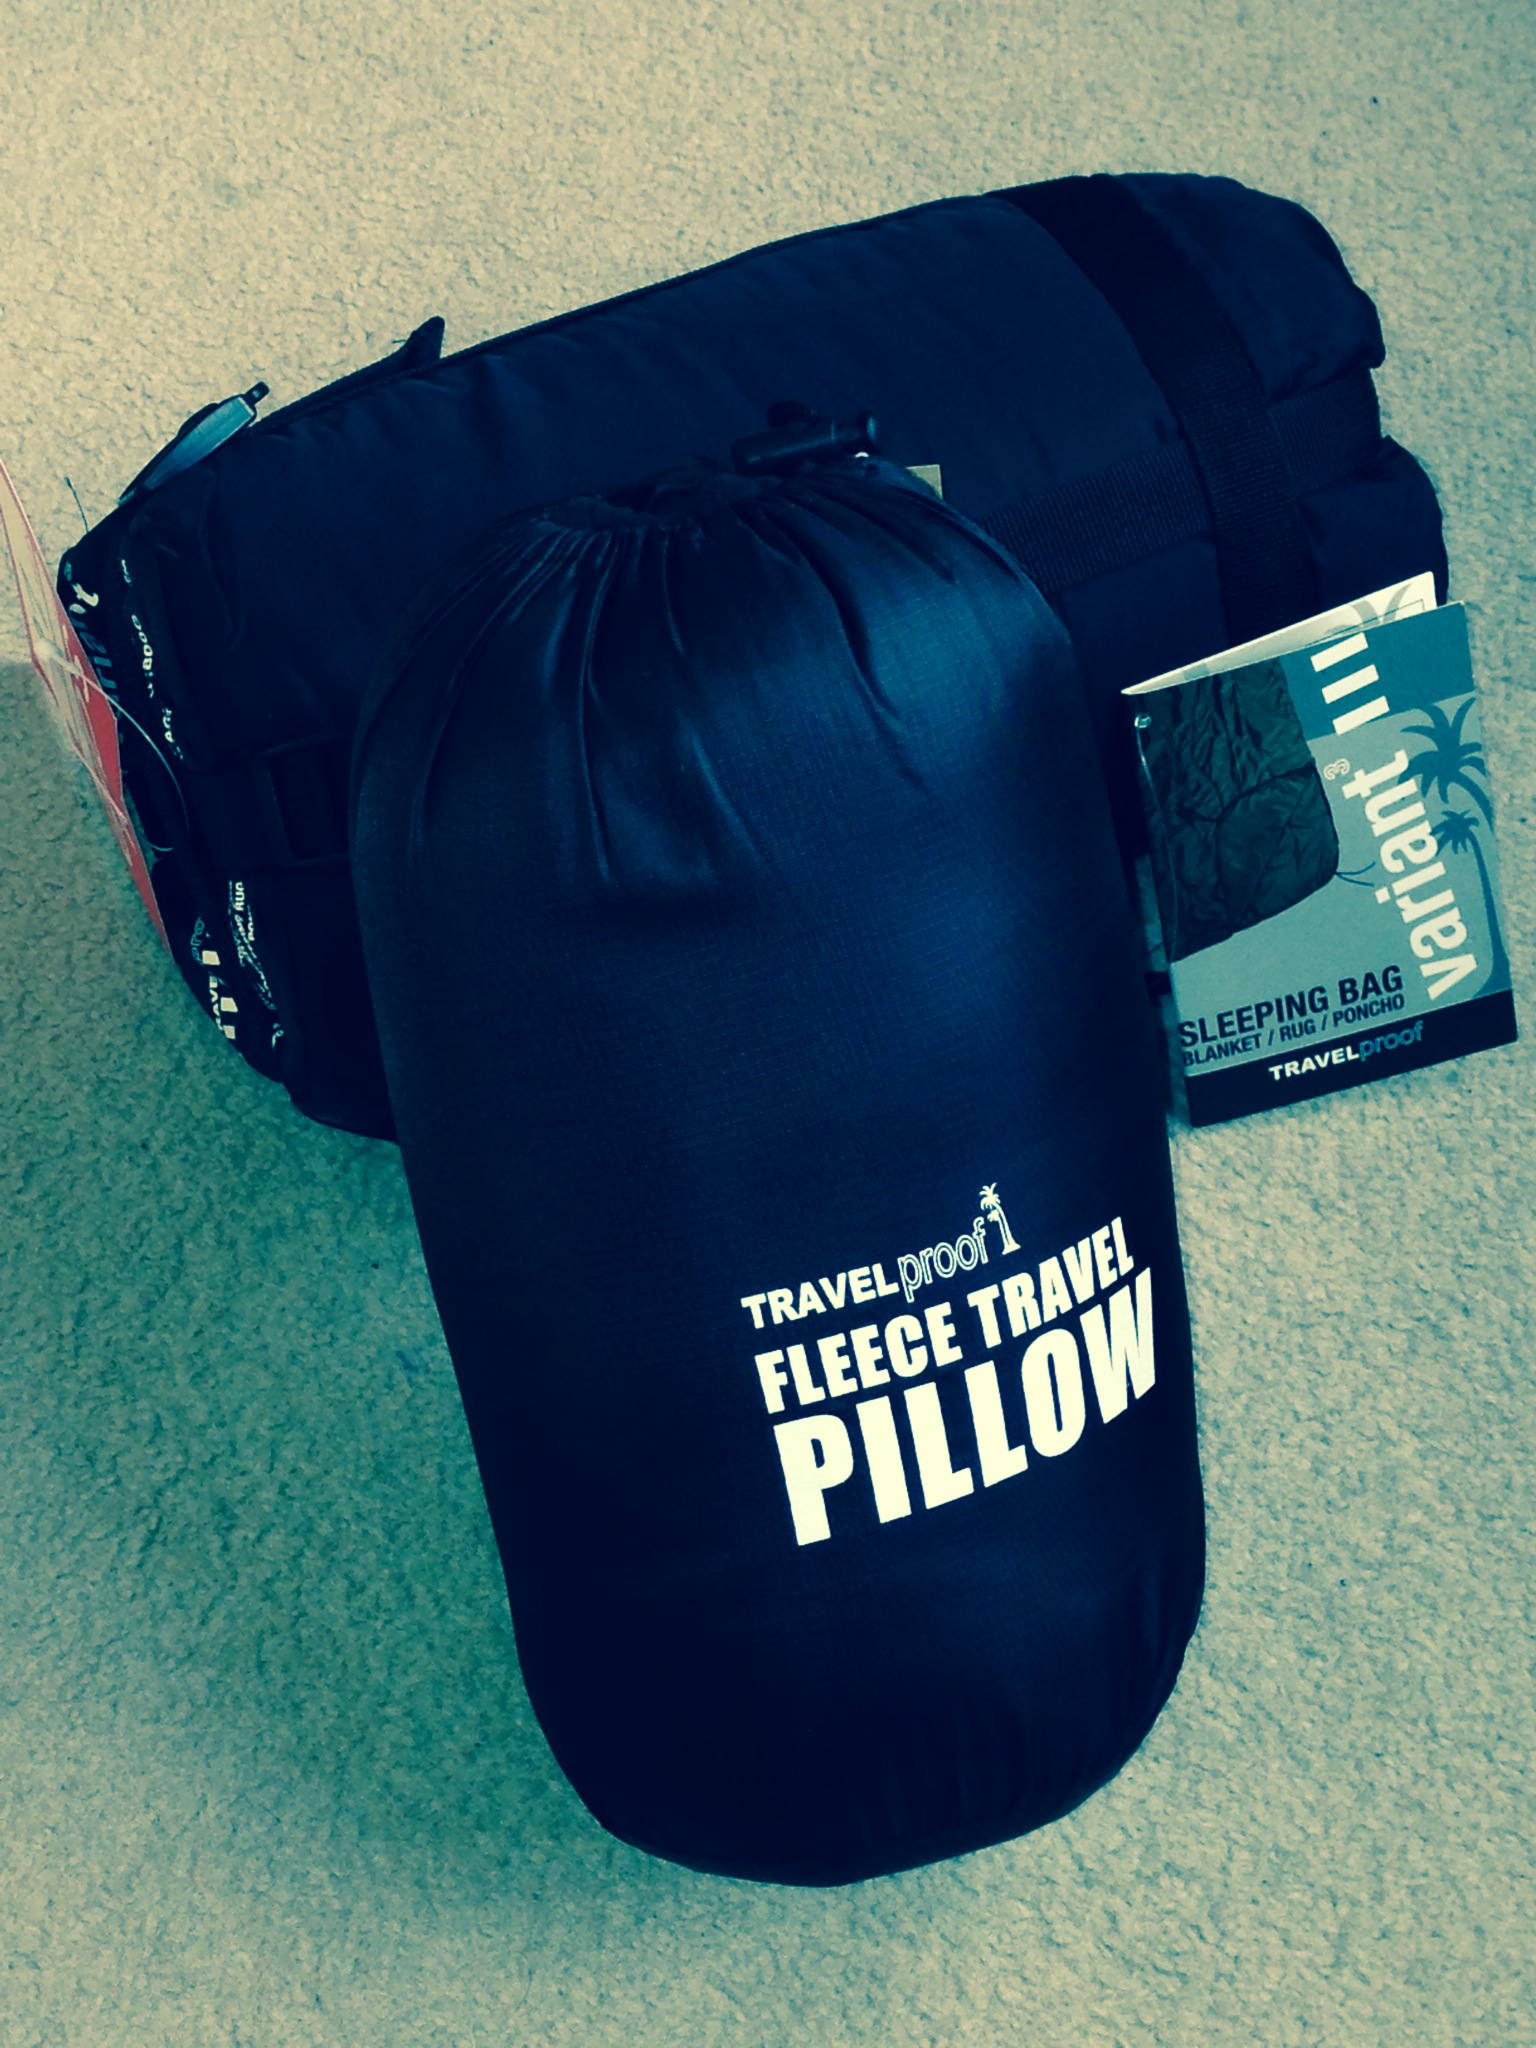 The first kit - Variant sleeping bag and travel pillow, both on sale